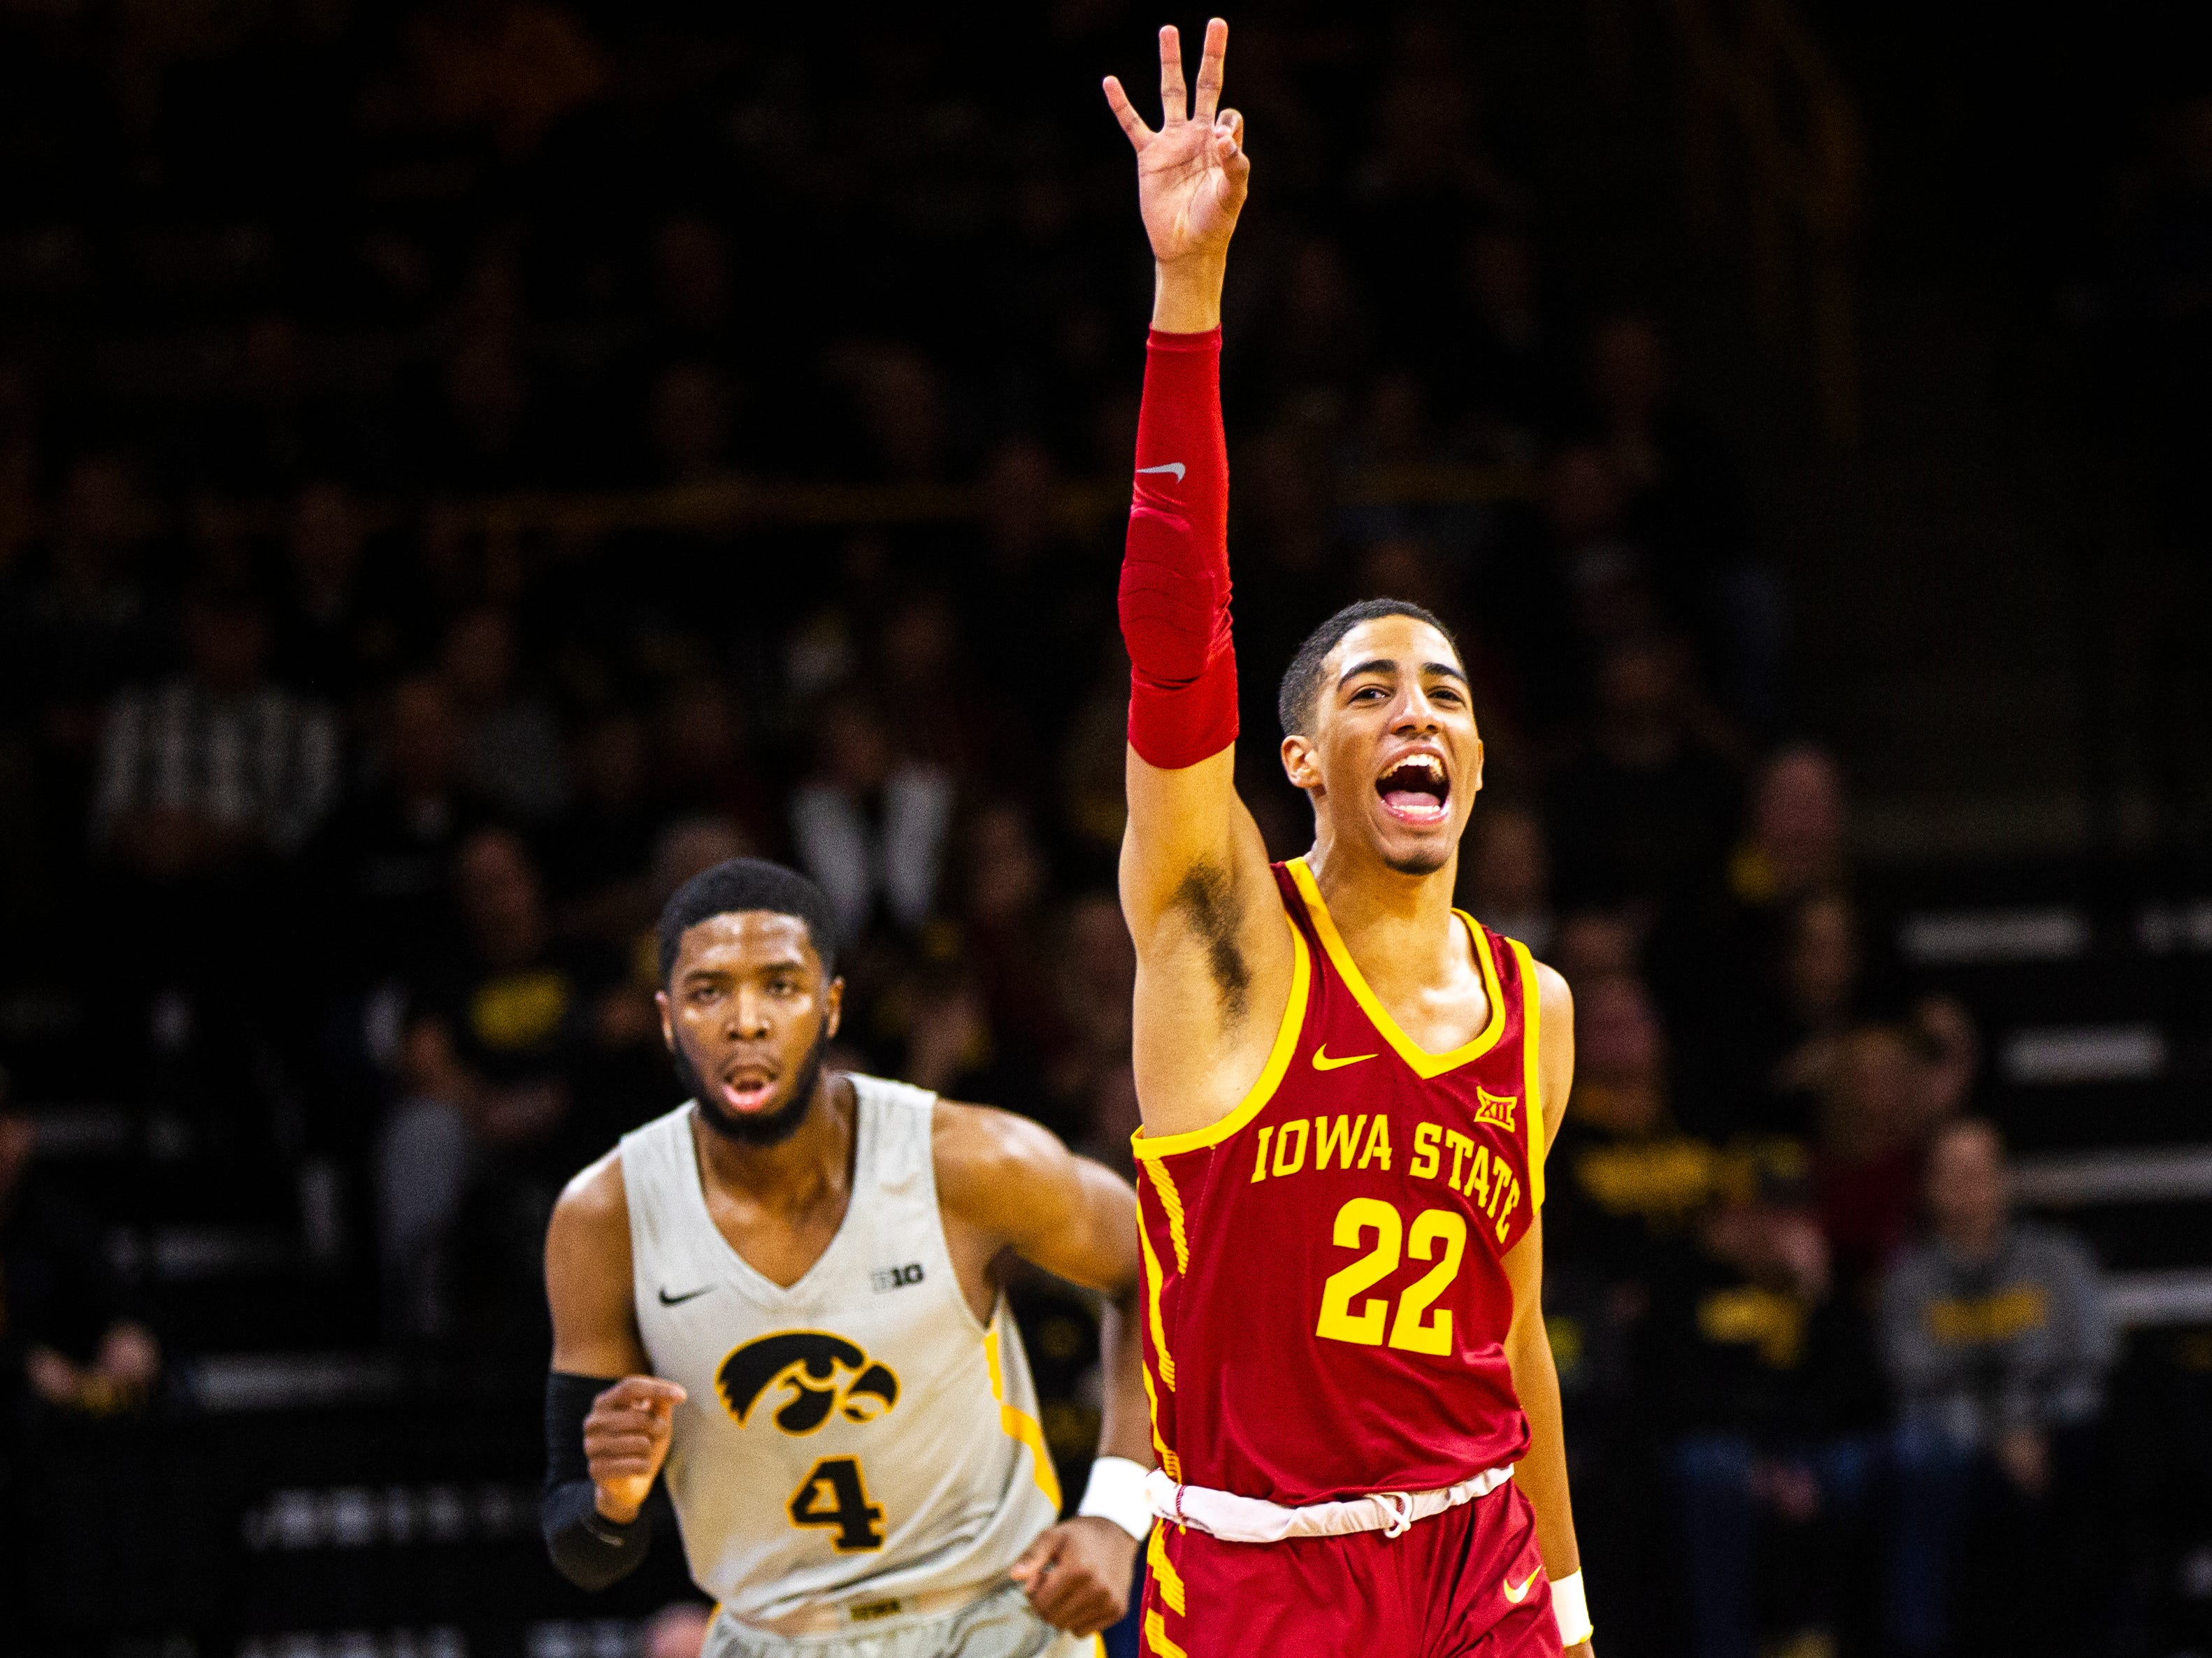 Iowa State guard Tyrese Haliburton (22) celebrates after making a 3-point basket during a NCAA Cy-Hawk series men's basketball game on Thursday, Dec. 6, 2018, at Carver-Hawkeye Arena in Iowa City.